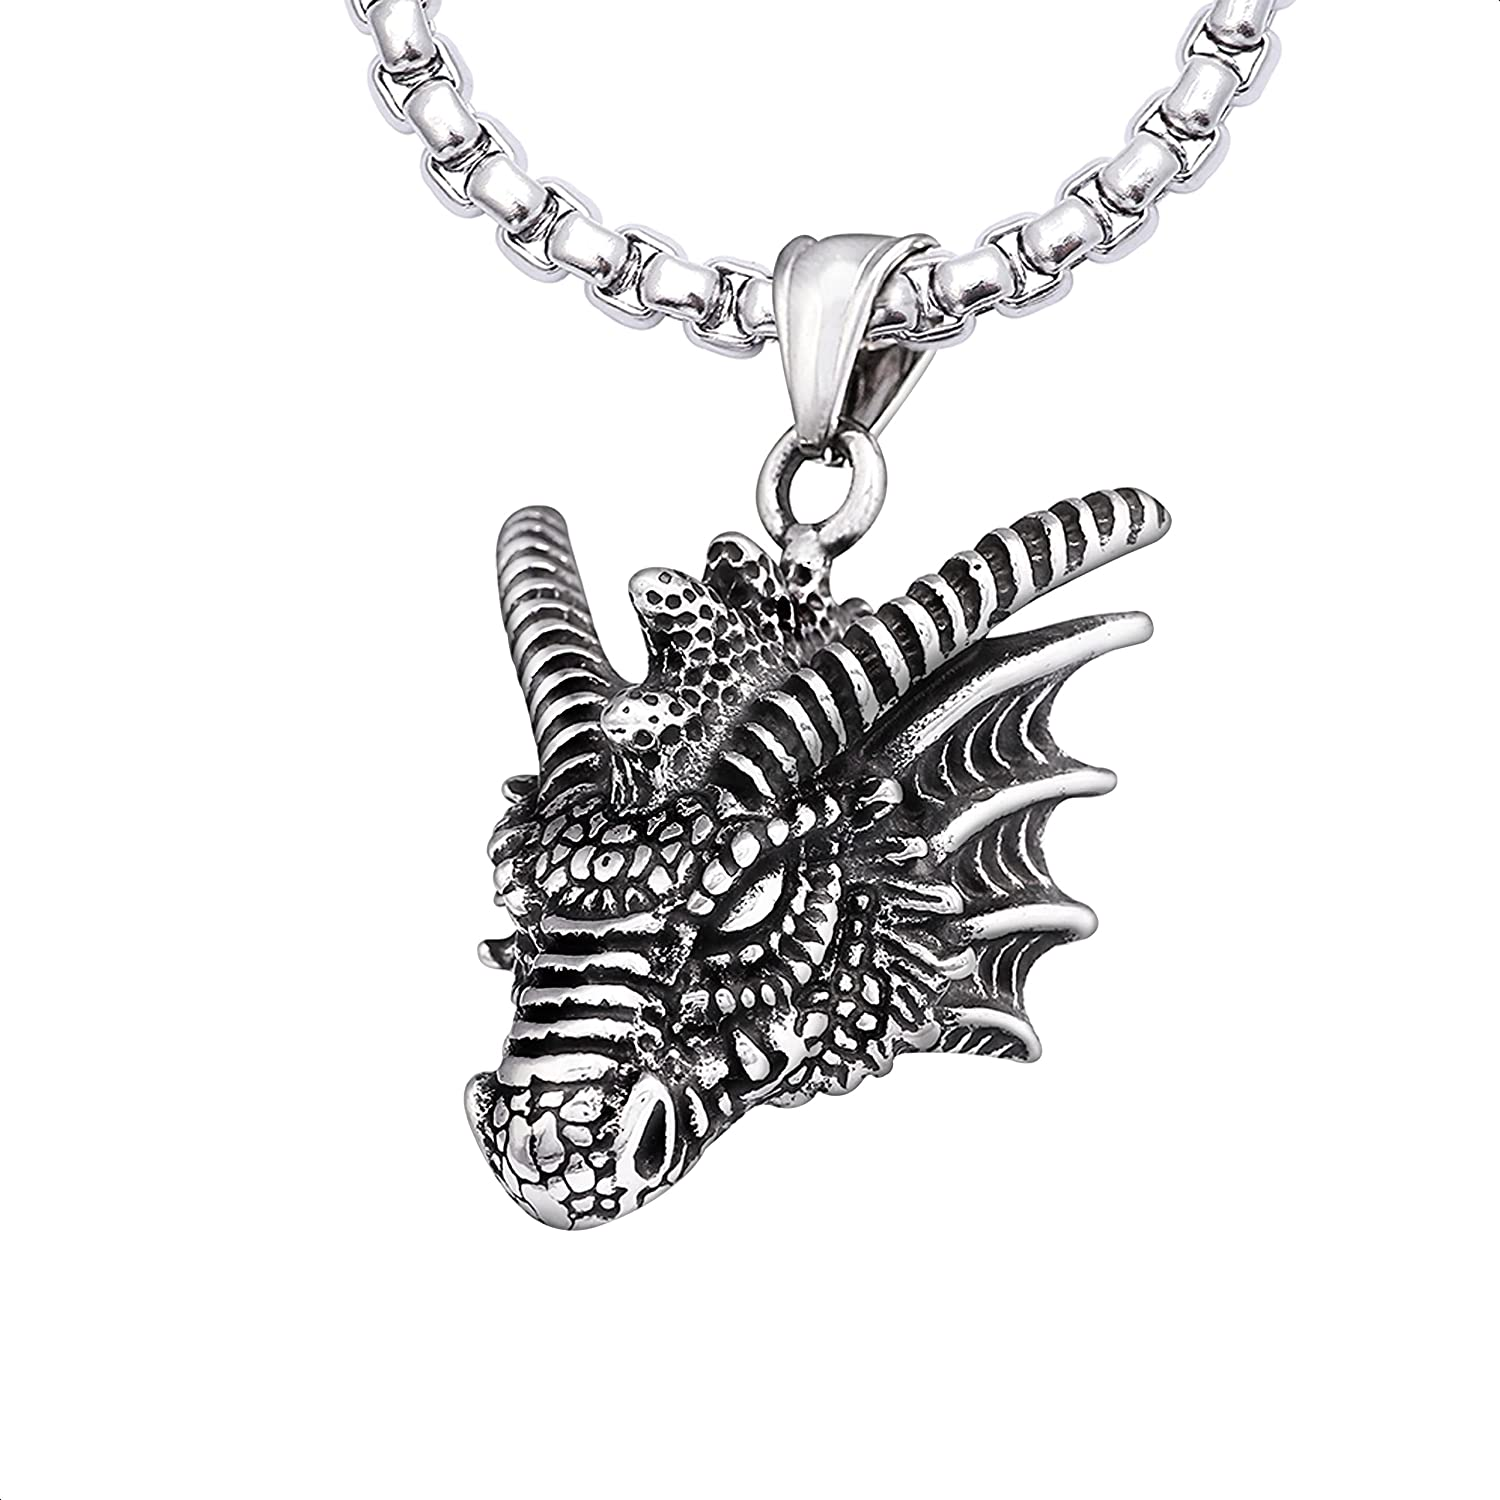 HAQUIL Dragon Necklace, Stainless Steel Dragon Head Pendant with Wheat Chain, Medieval Fire Dragon Jewelry Gift for Men and Women